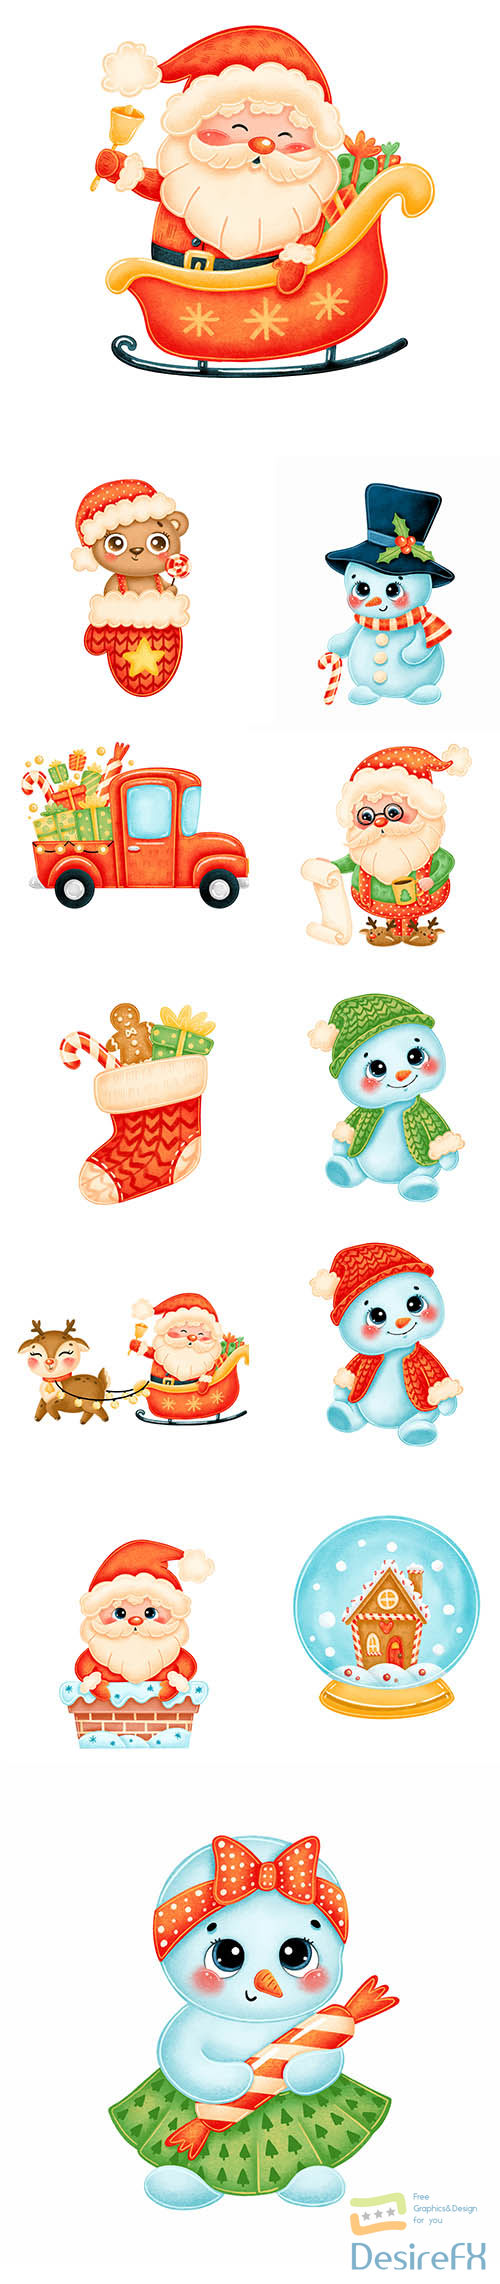 Cute cartoon christmas image